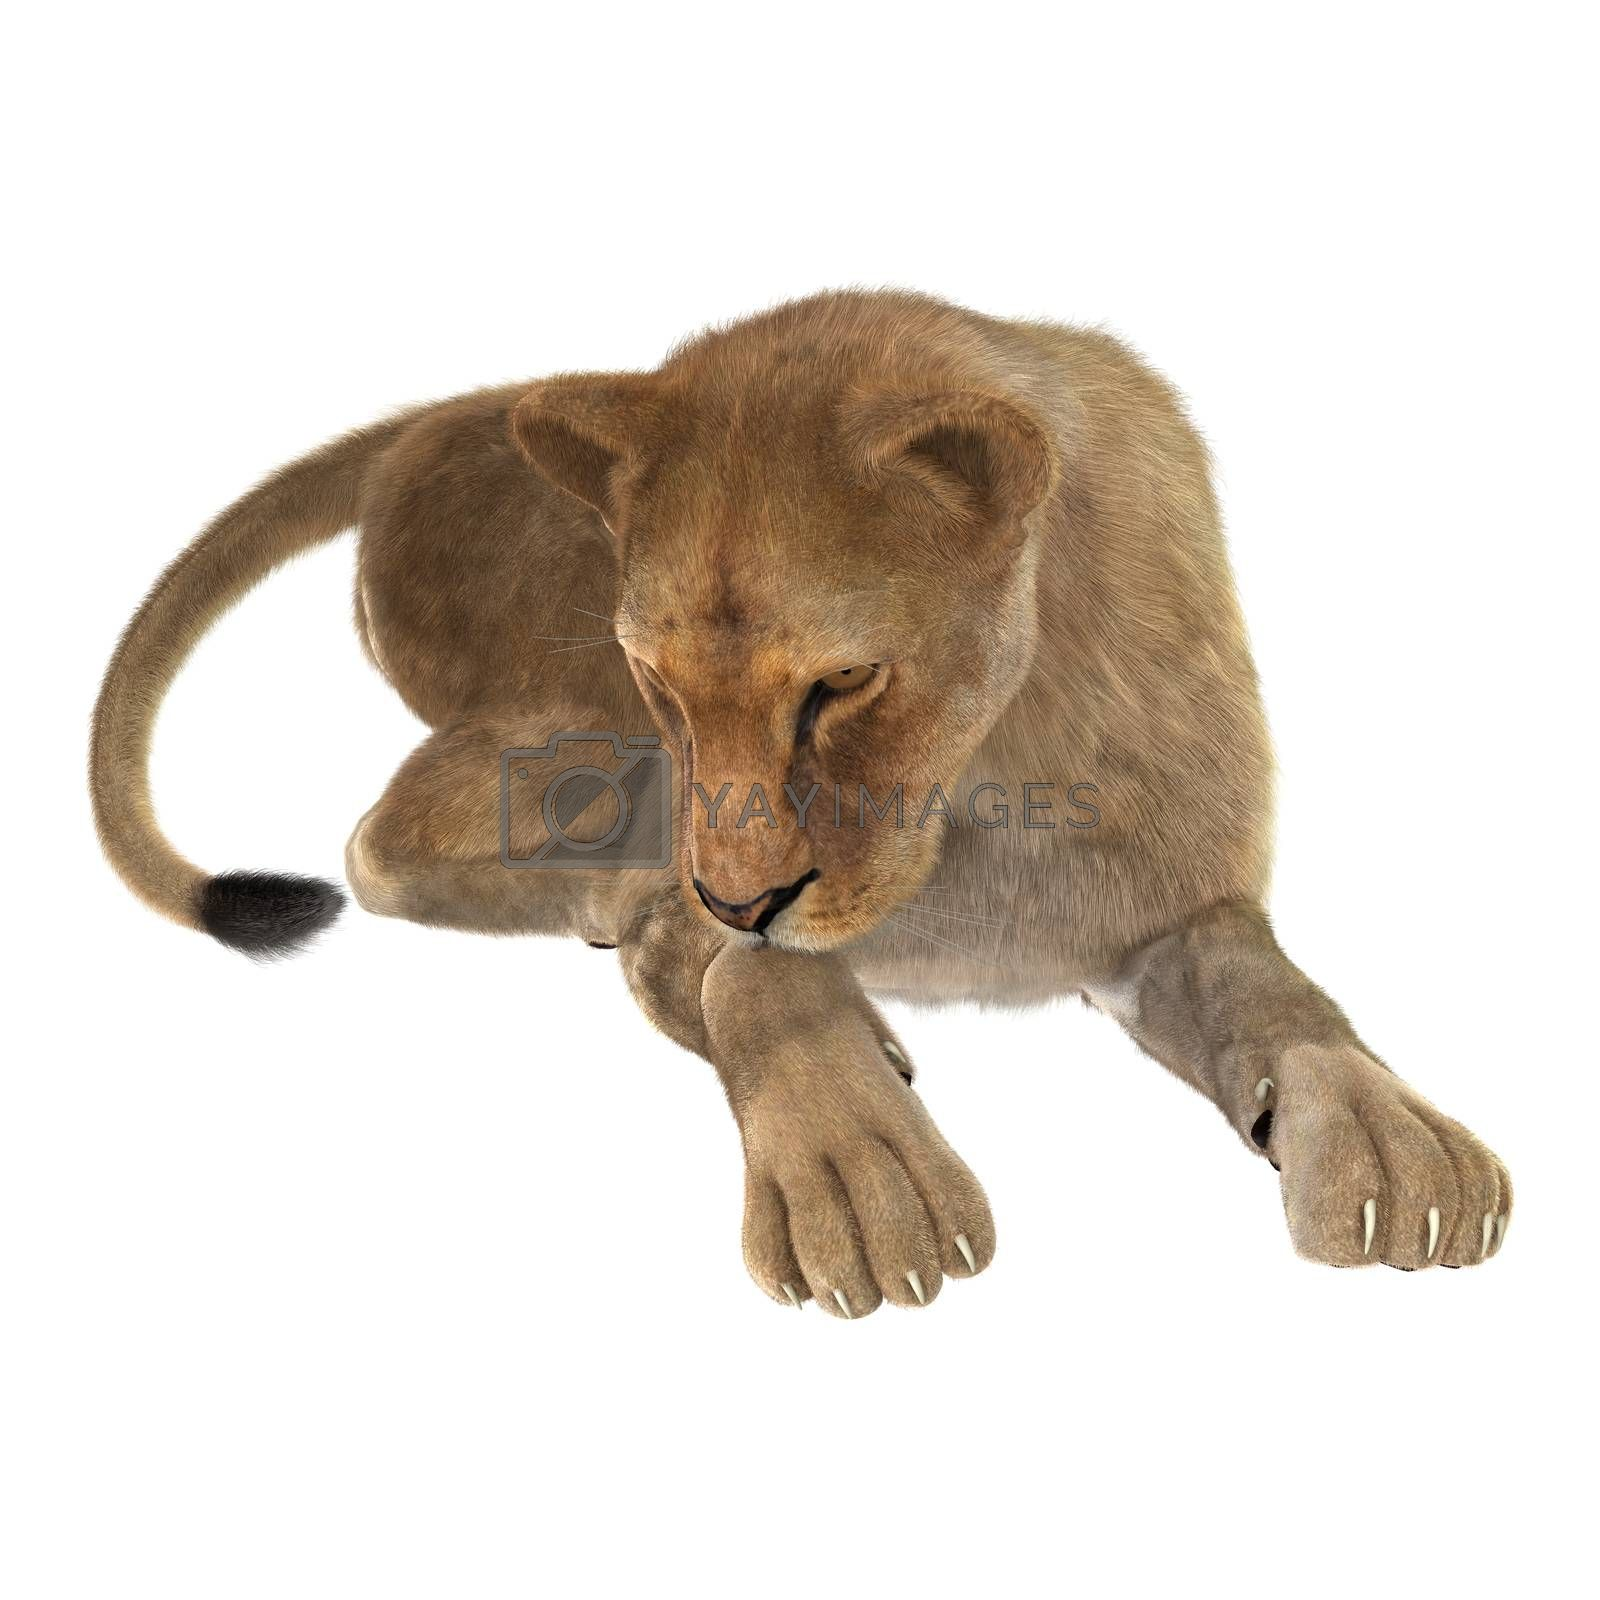 Royalty free image of Female Lion by Vac